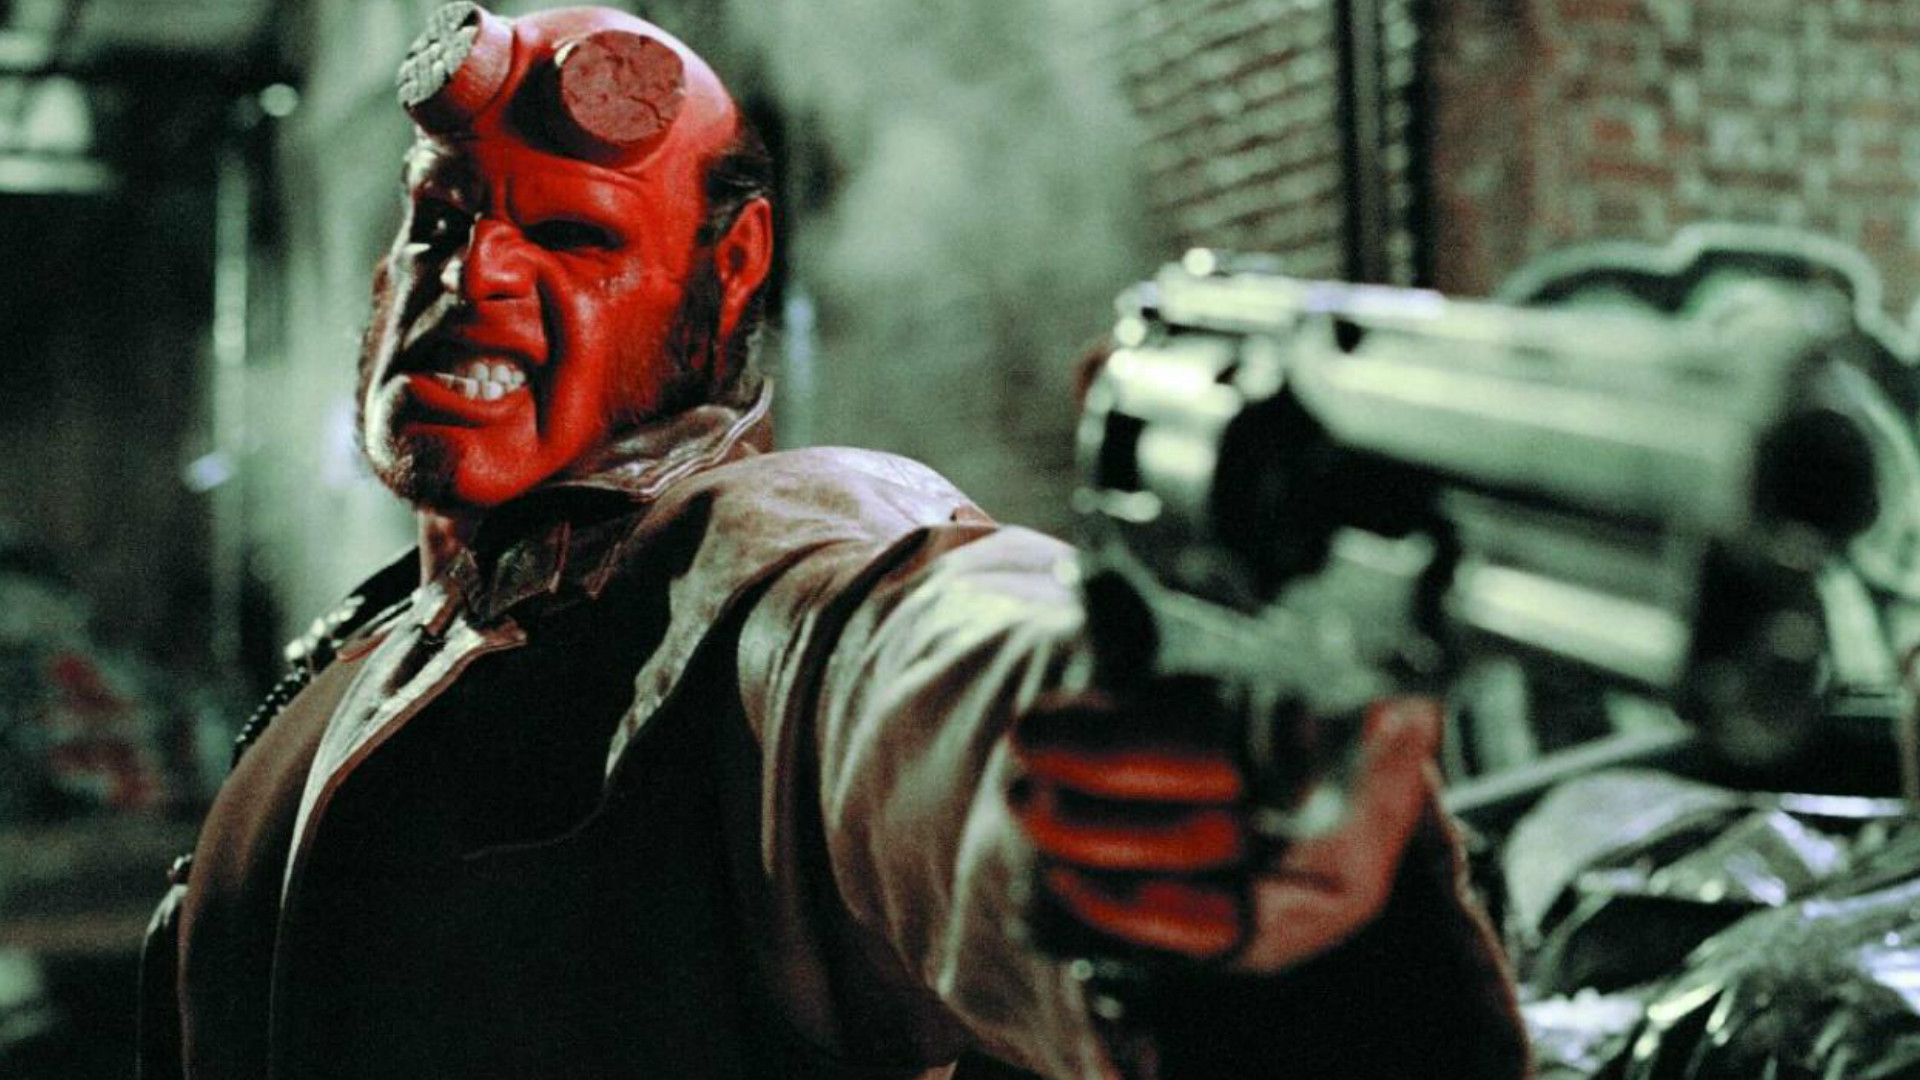 Ron Perlman has long wanted Hellboy 3 to happen